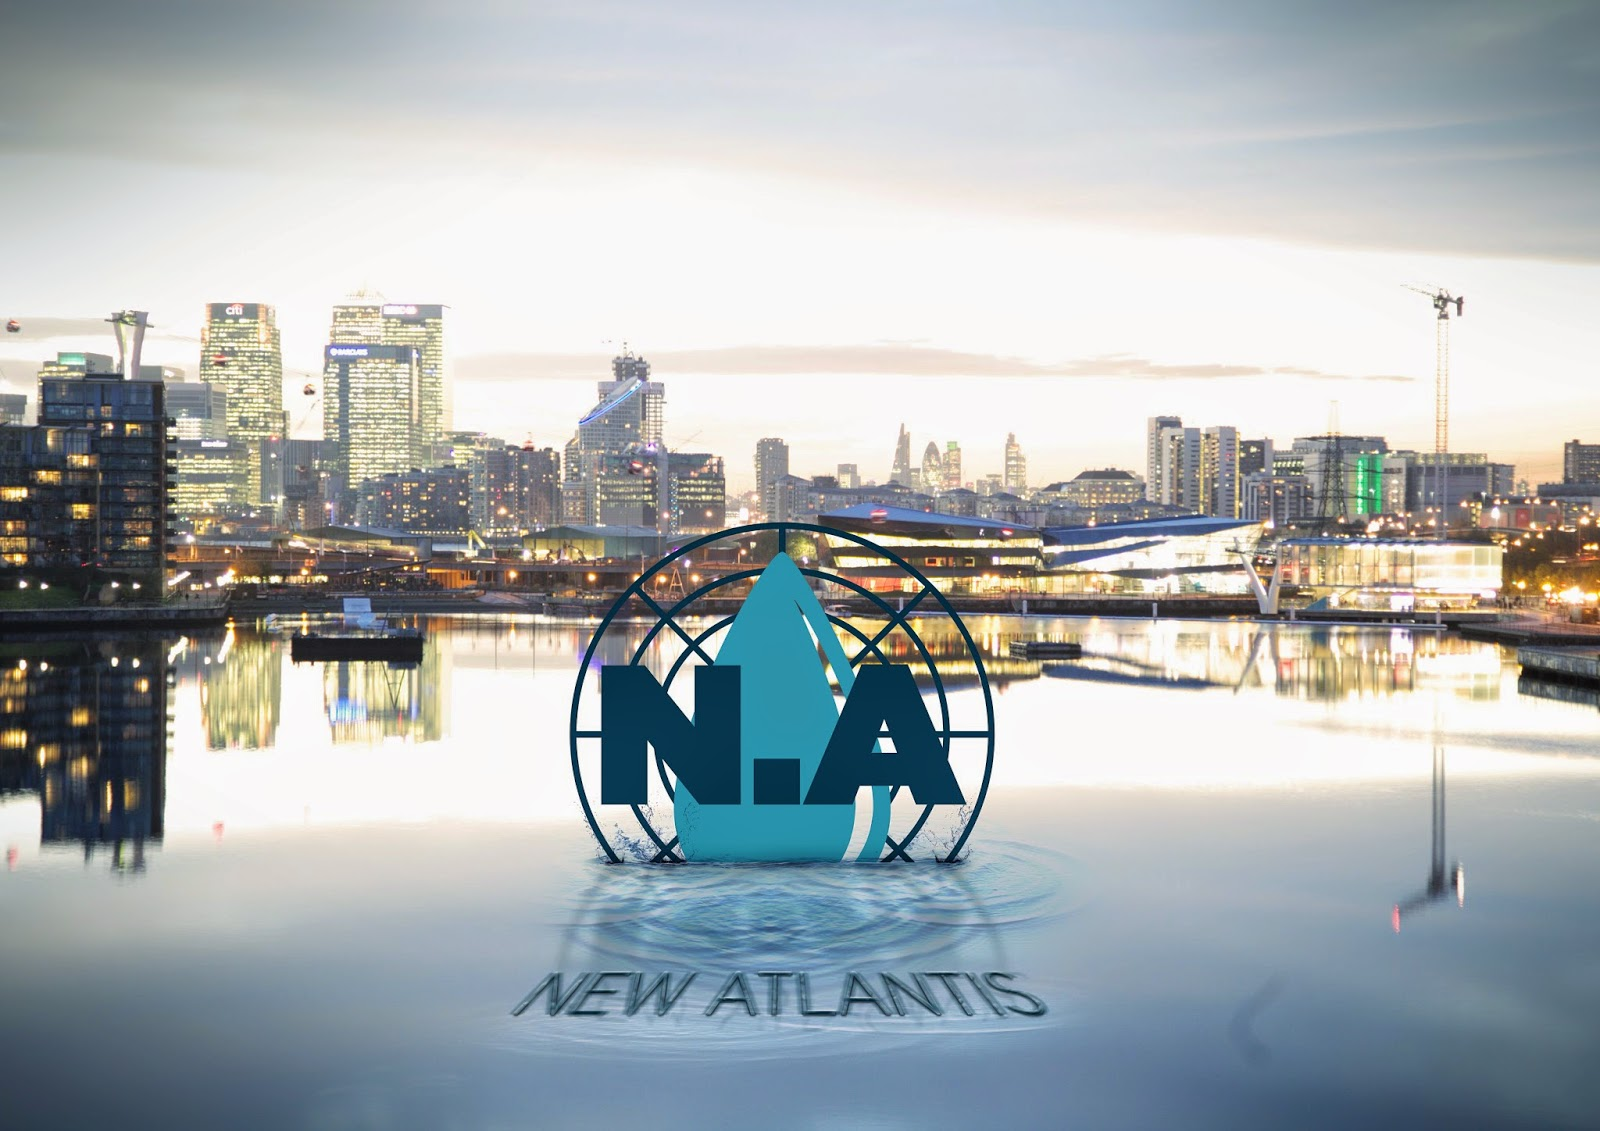 New Atlantis The Crystal